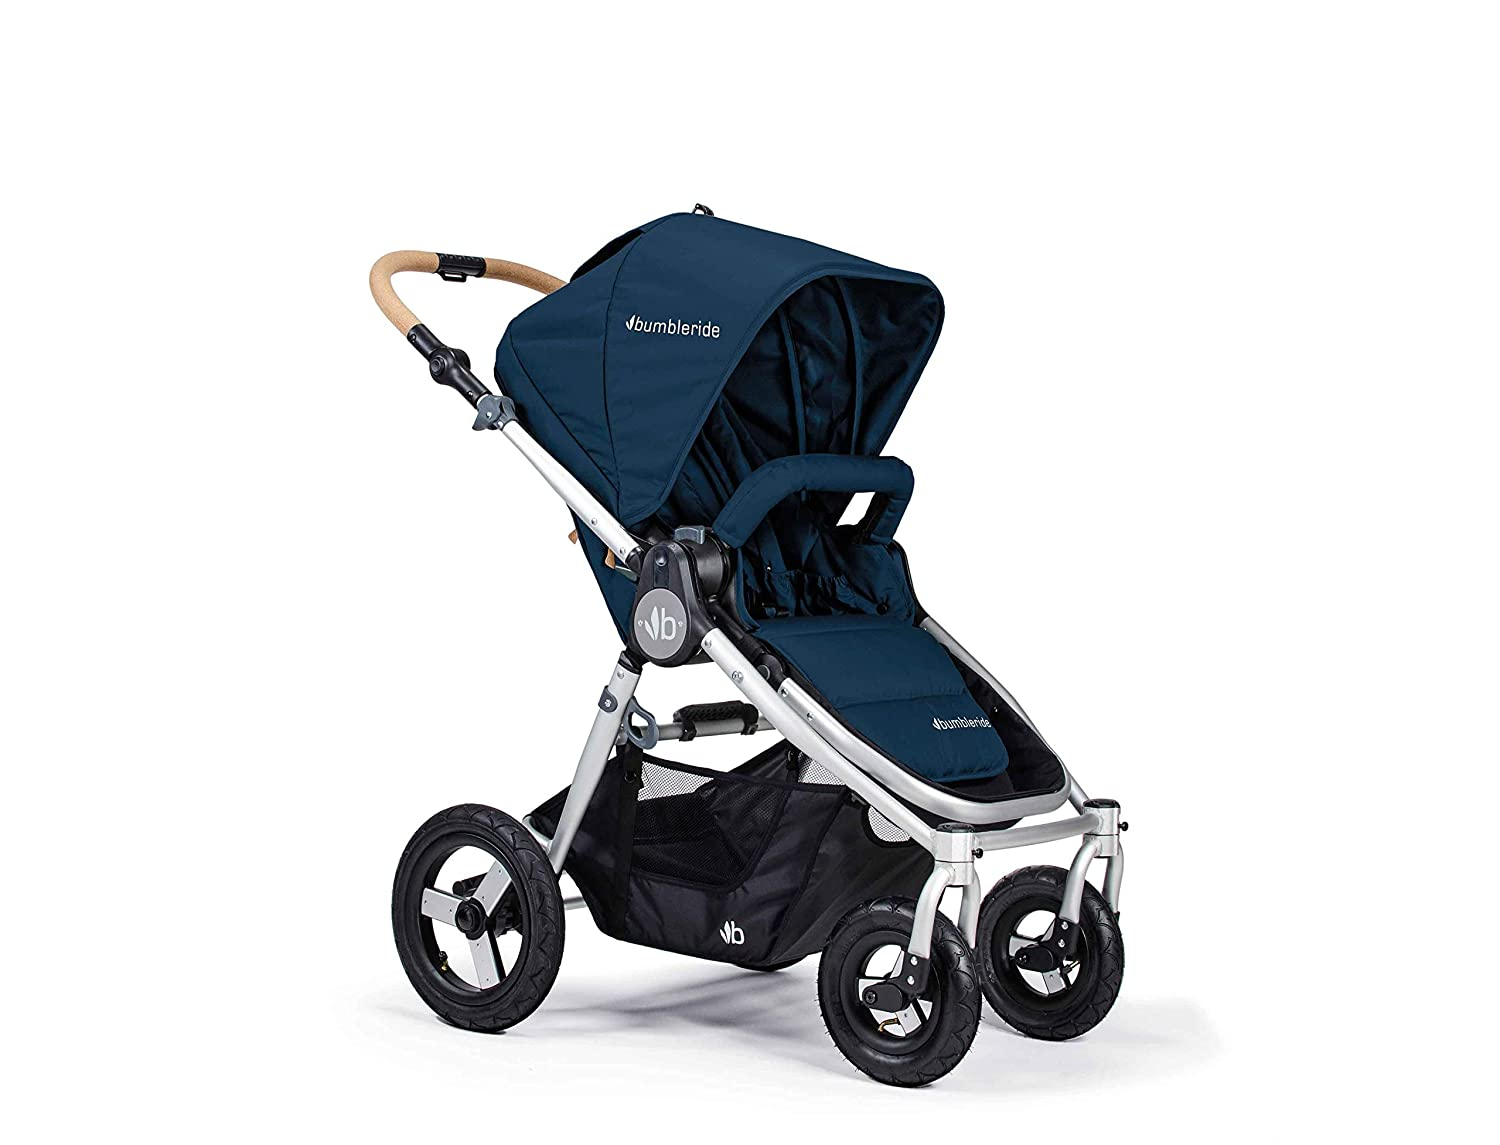 Bumbleride Era City Stroller – Eco Friendly Reversible Single Stroller with Canopy